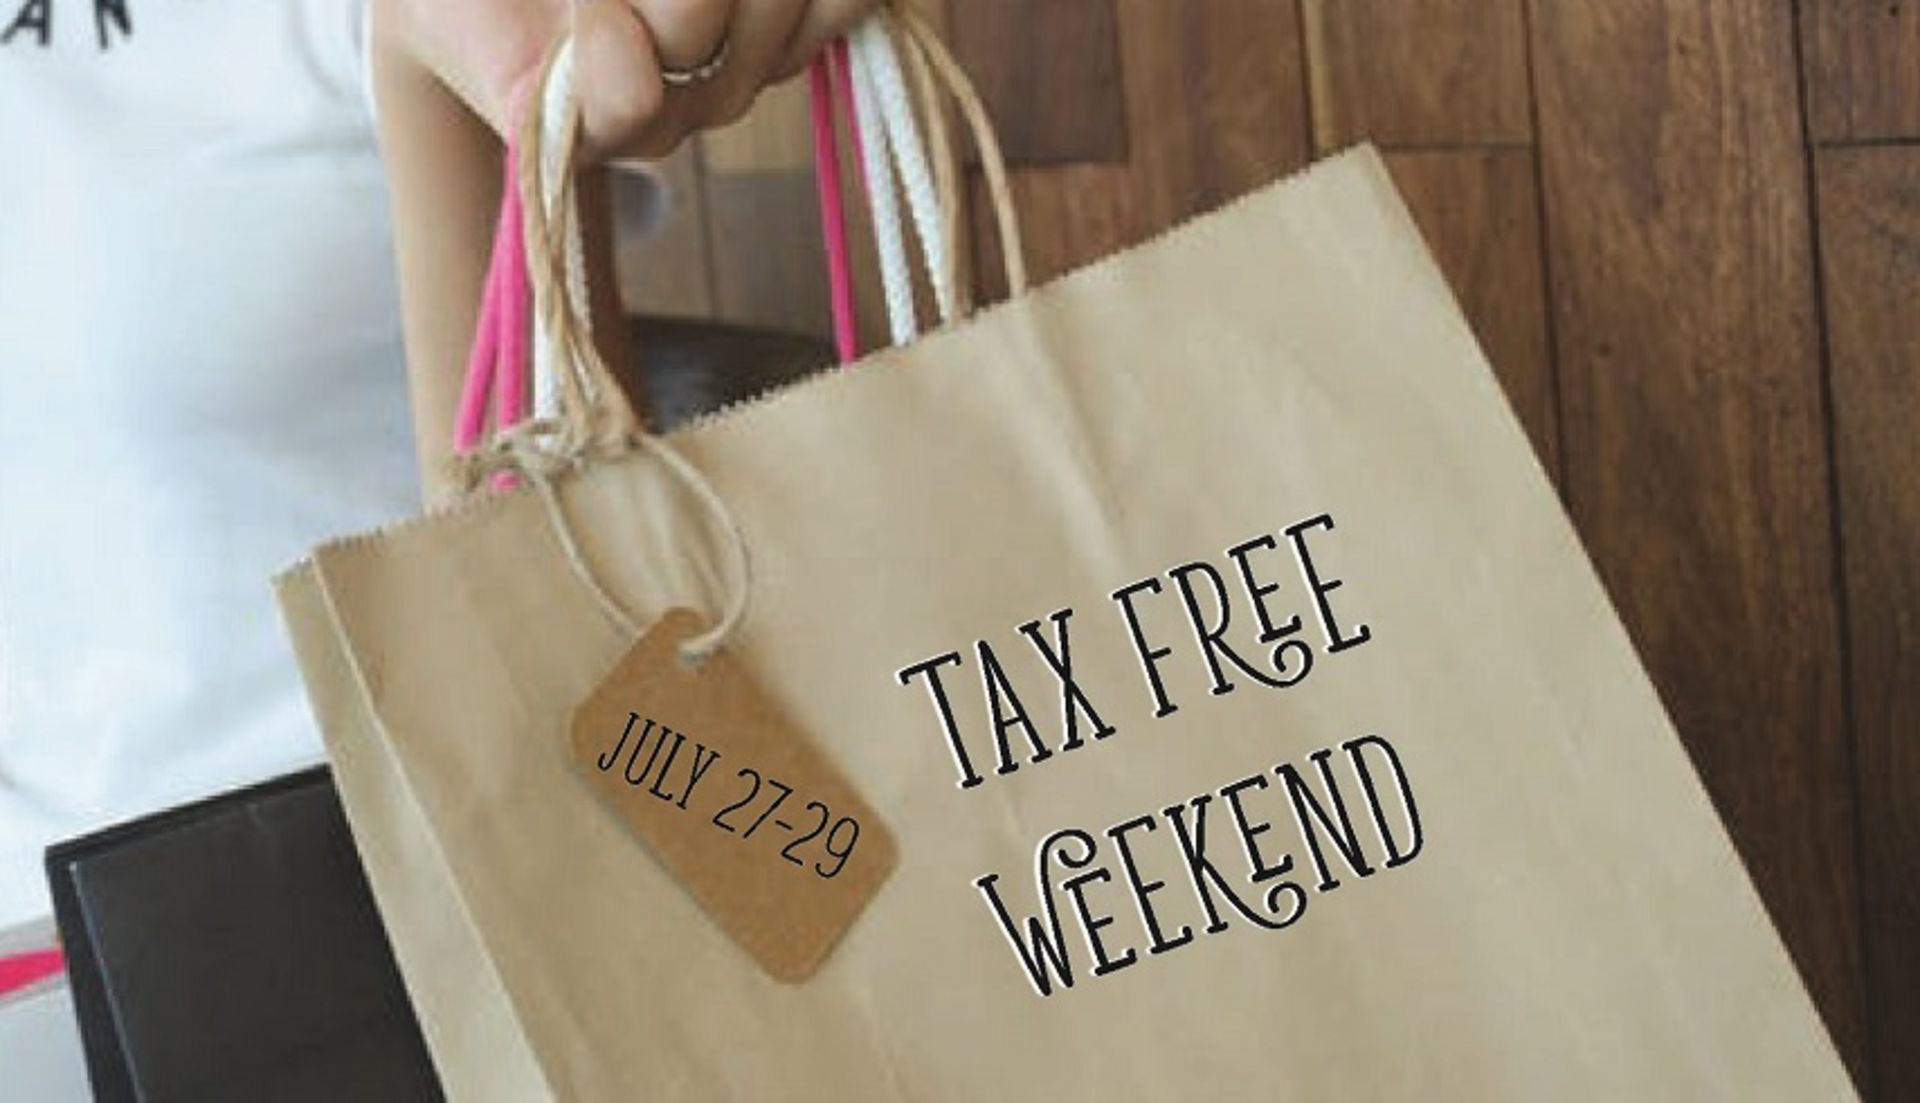 5 Tips for Tax Free Weekend in Tennessee